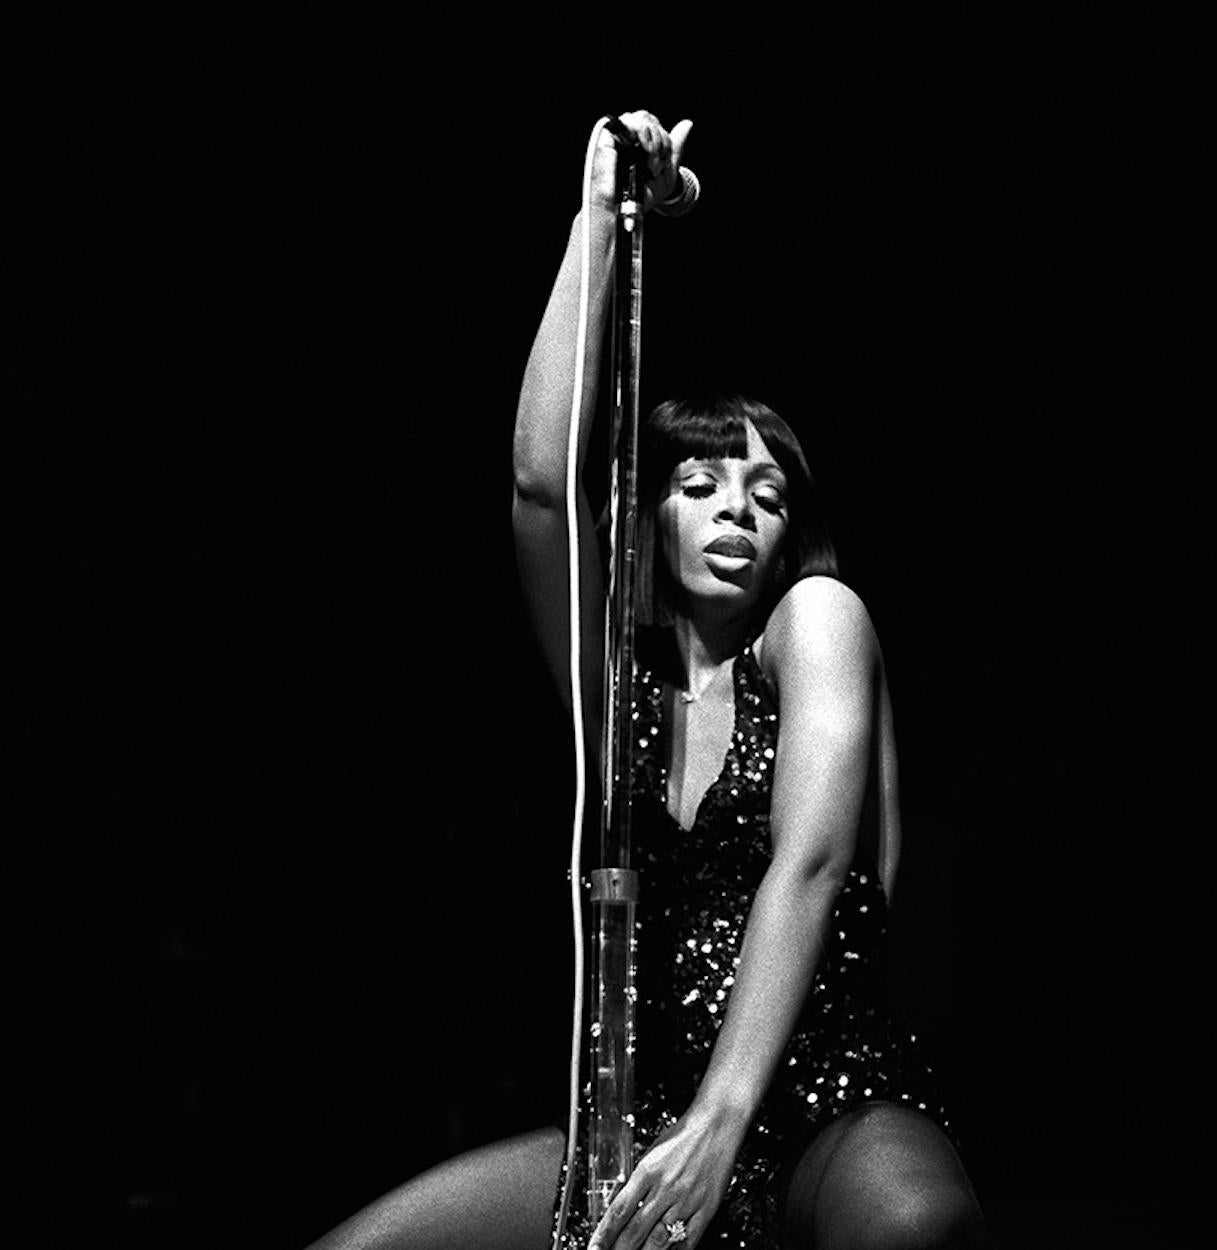 245d6e2c906d Michael Putland - Donna Summer - 20th century black and white music  photography